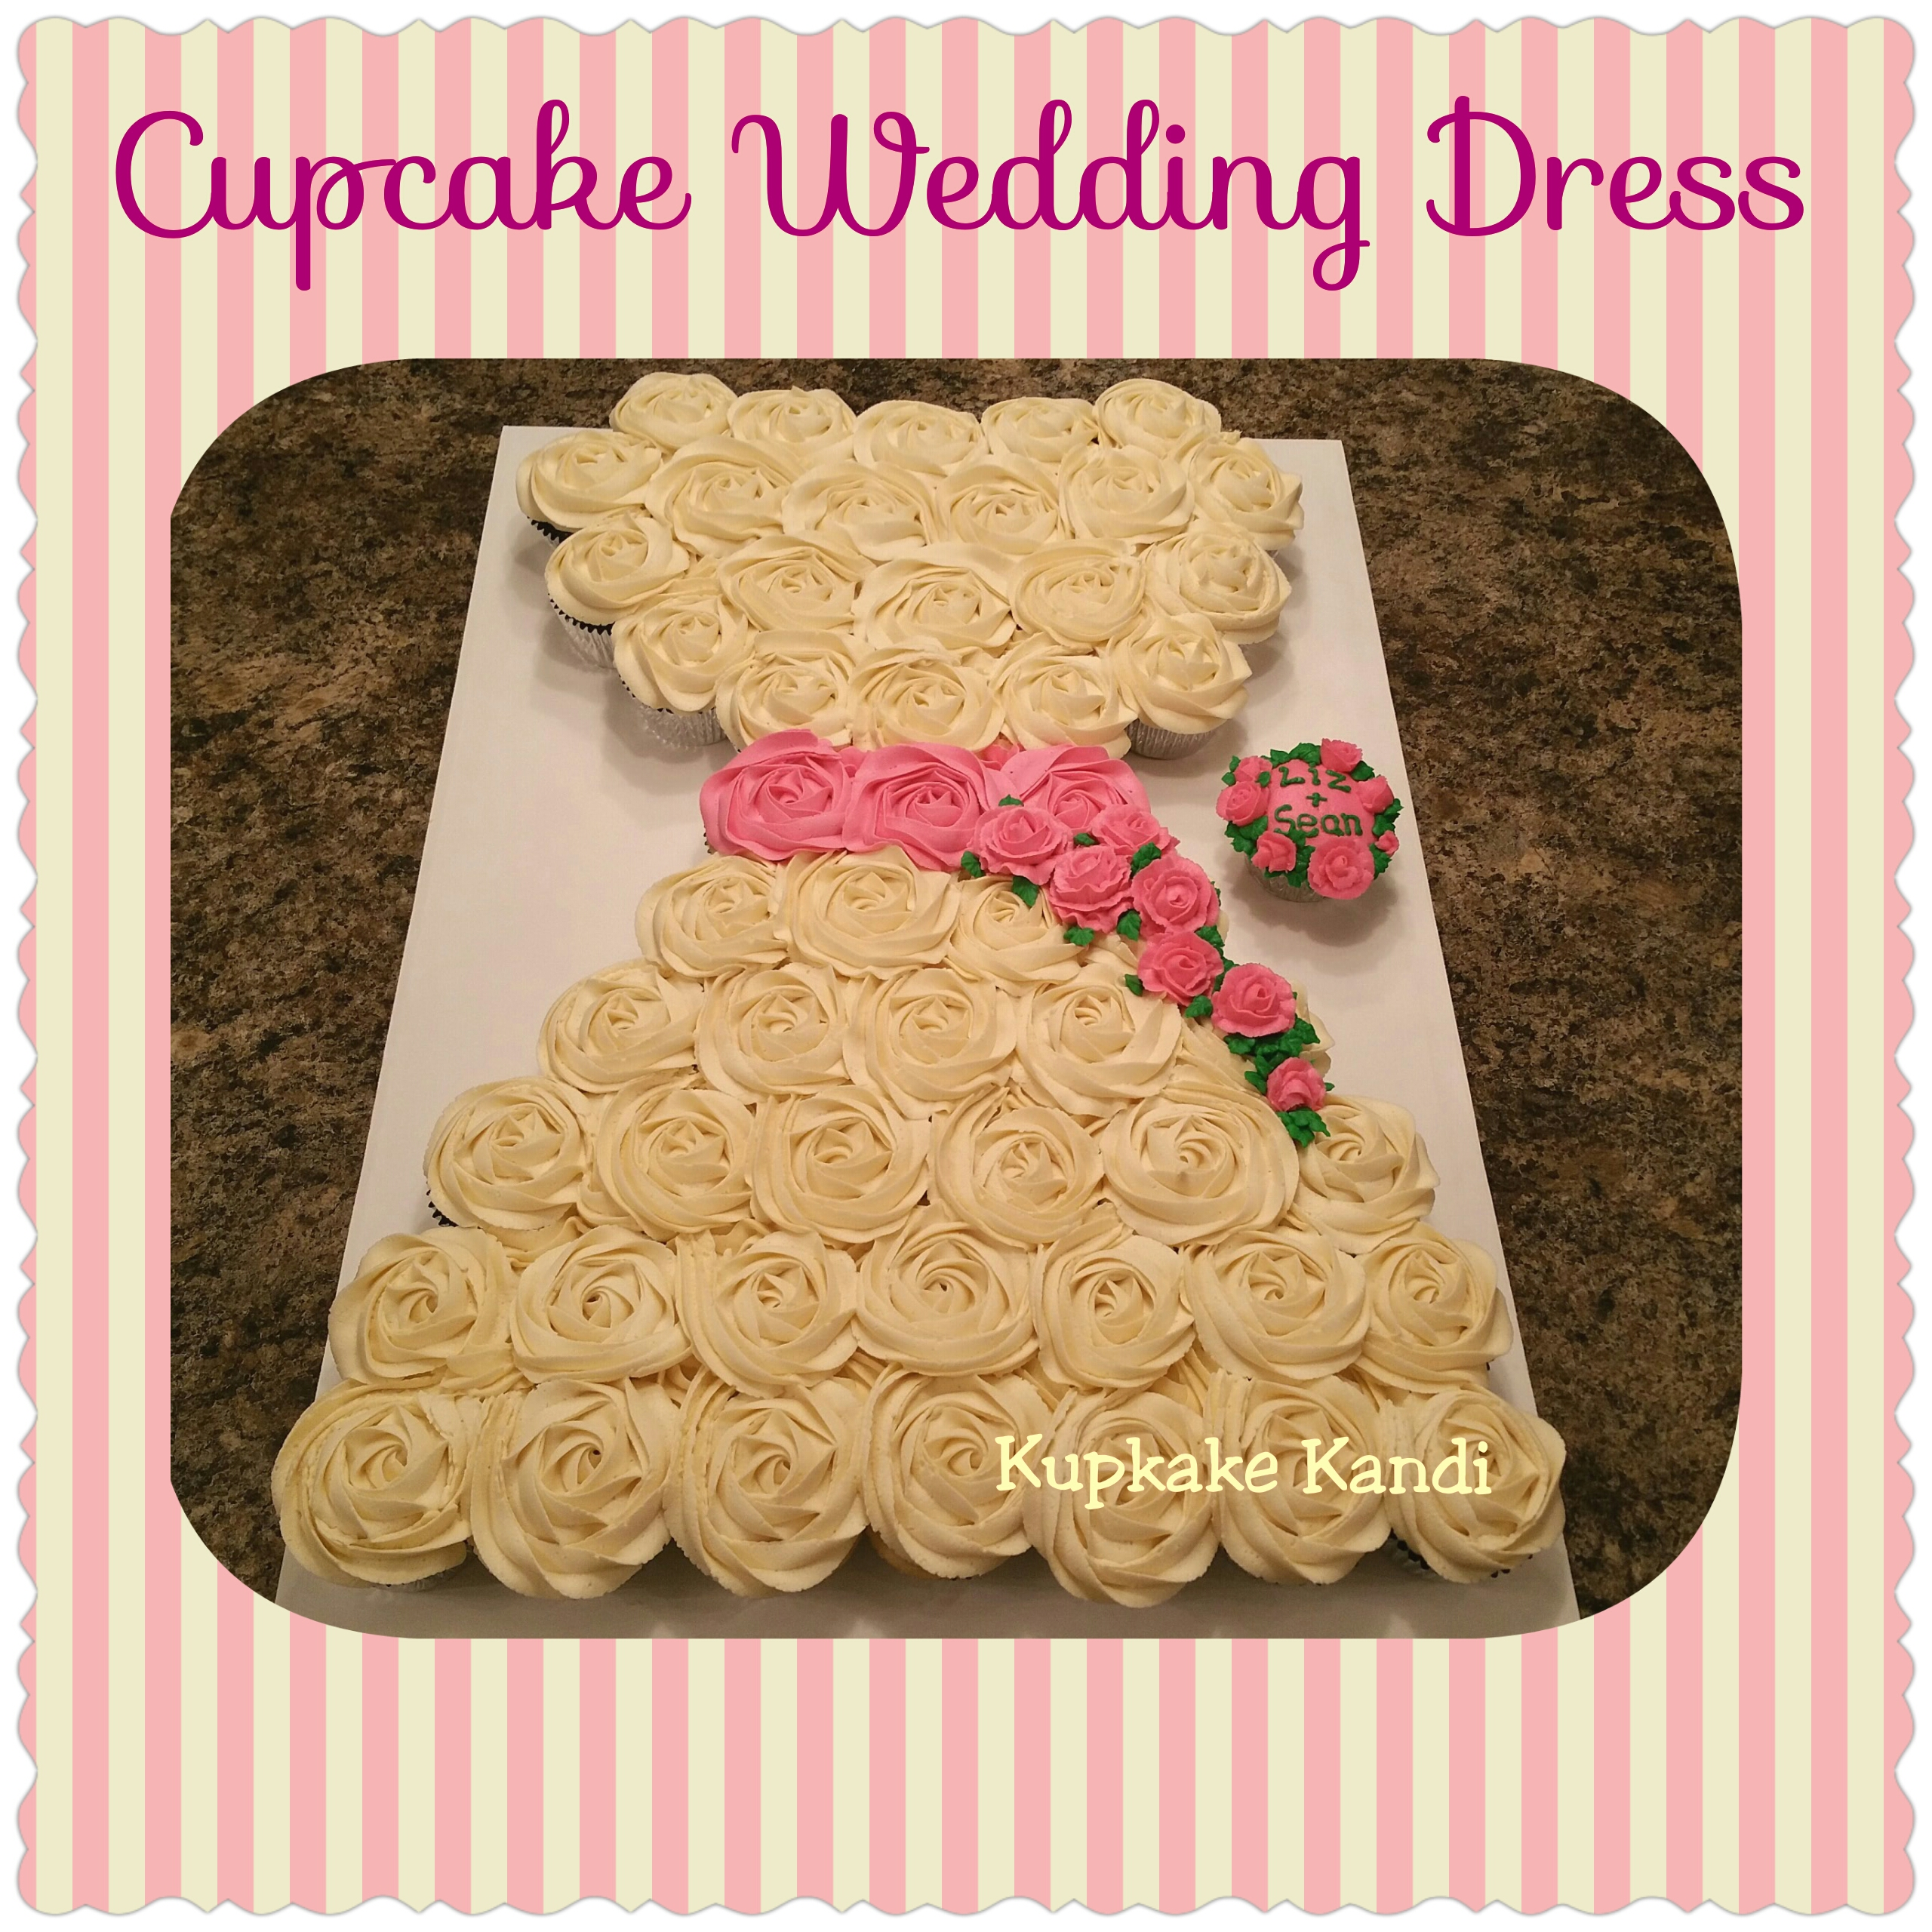 1000 images about Cupcake Cake Cookie Decorating on